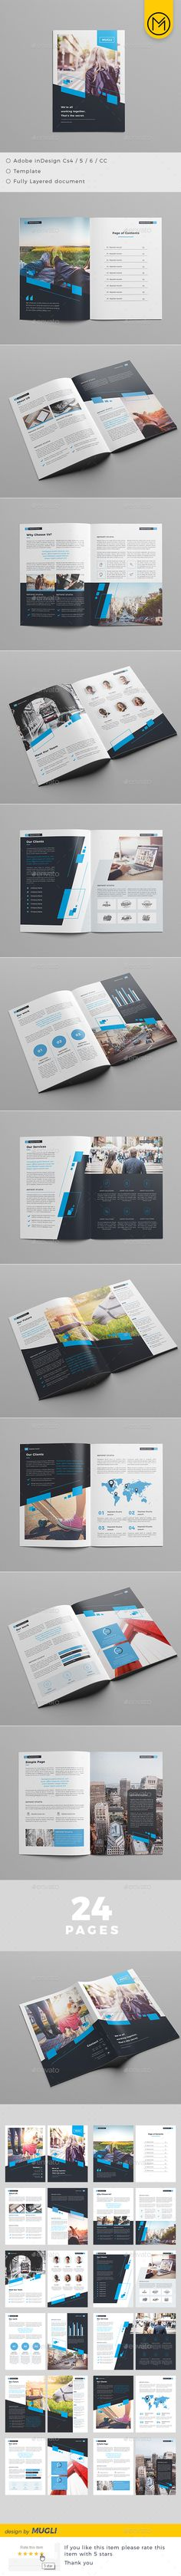 The Brochure Brochure Template InDesign INDD